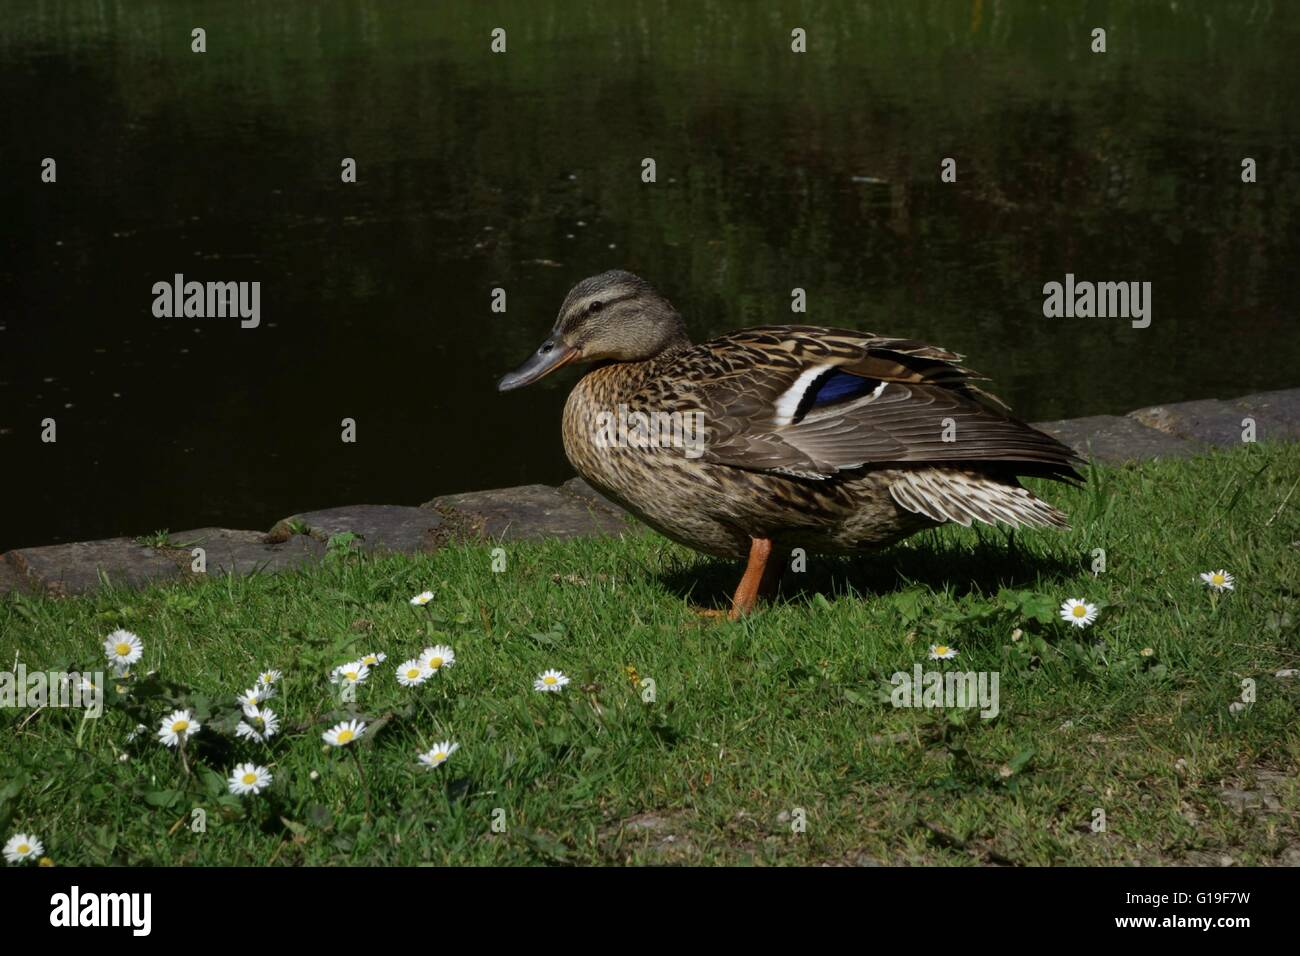 Female Mallard duck perched on grass canal towpath. West midlands. UK - Stock Image